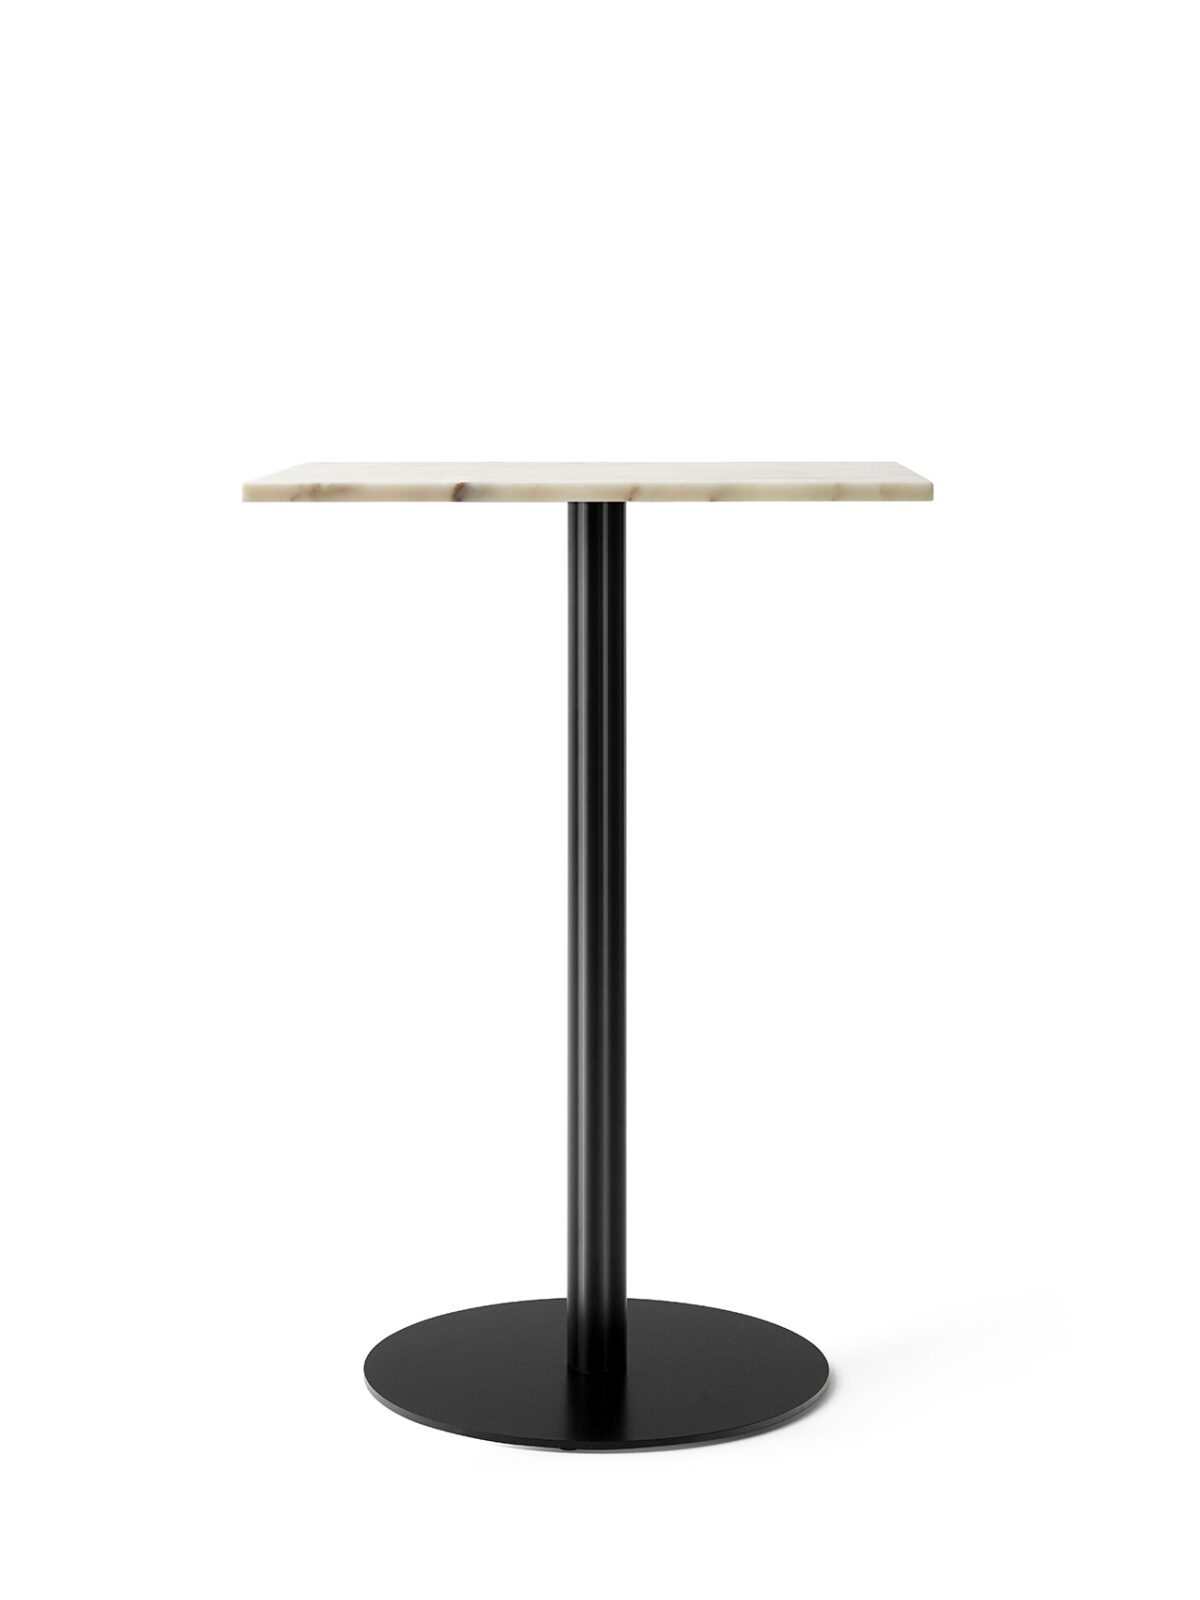 9306659 Harbour Column Table Off White2019 06 21 14 23 35 718 1 1